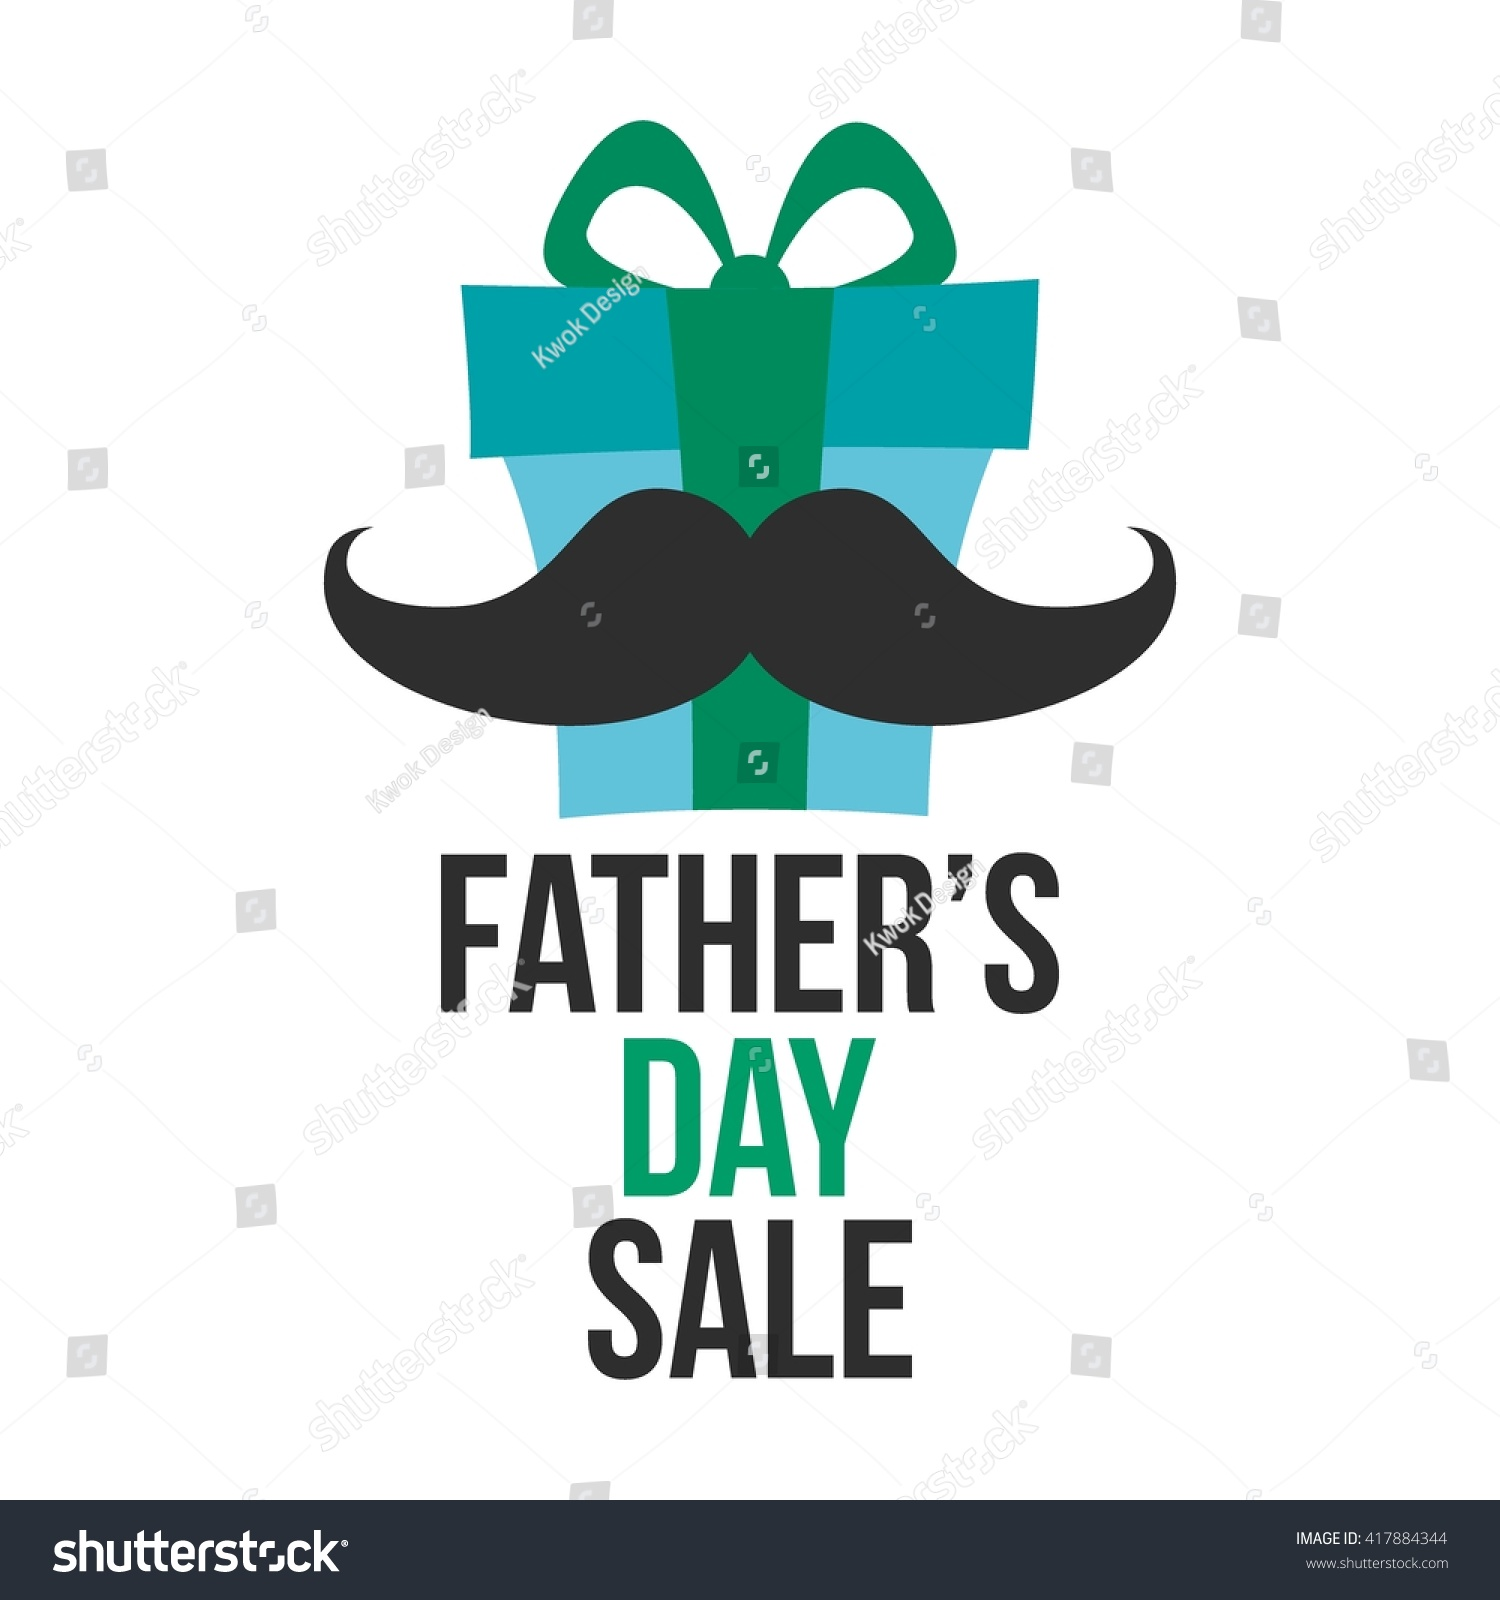 96b745fa73e6c Happy Fathers Day Sale Vector Illustration Stock Vector (Royalty ...